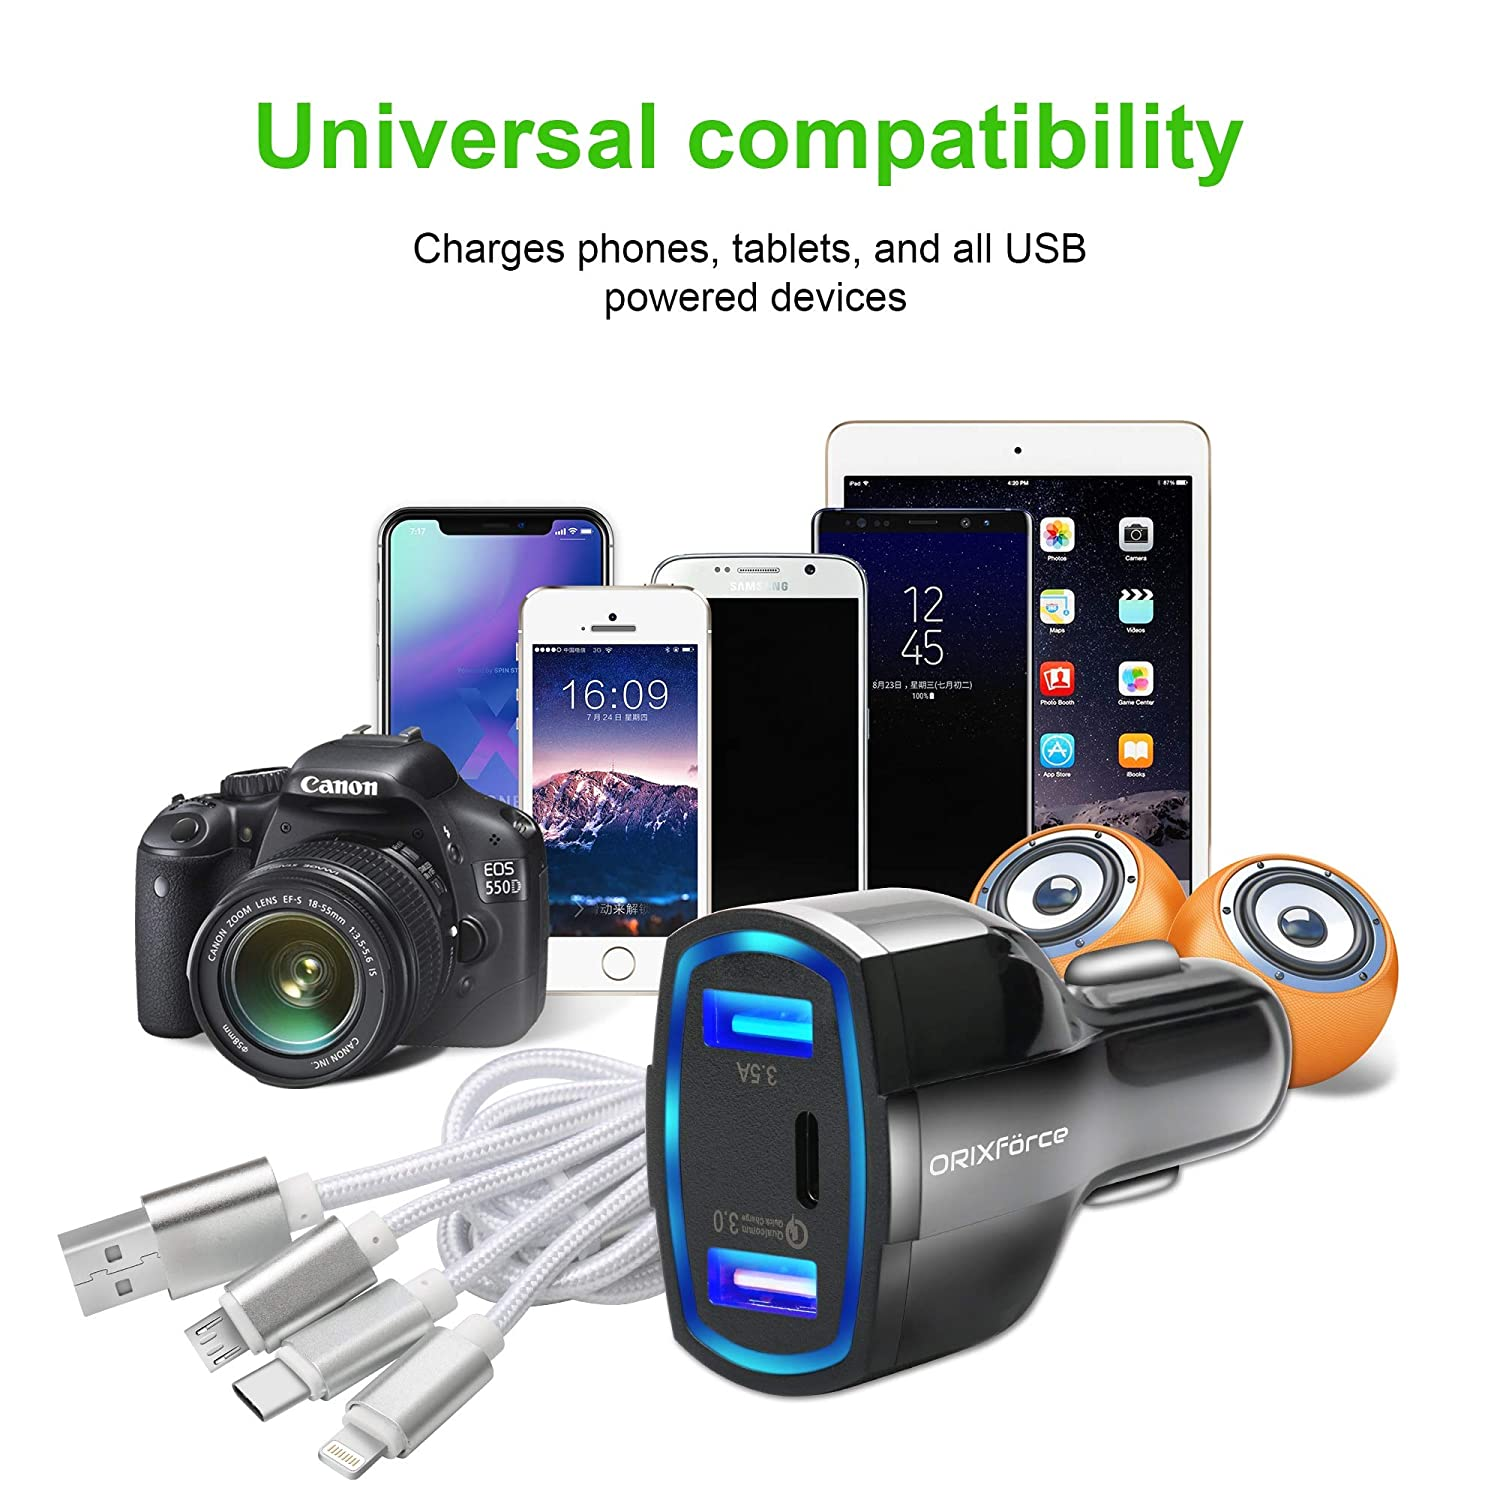 USB-c PD Charger Adapter 4X Faster for Apple iPhone Xs Max//XR//8//7//6//Plus Galaxy S9//S8 Note 9//8 Car Charger ORIXf/örce Dual USB Ports iPad Air 2//Pro//Mini 3 HTC Nexus LG Pixel USB Cable